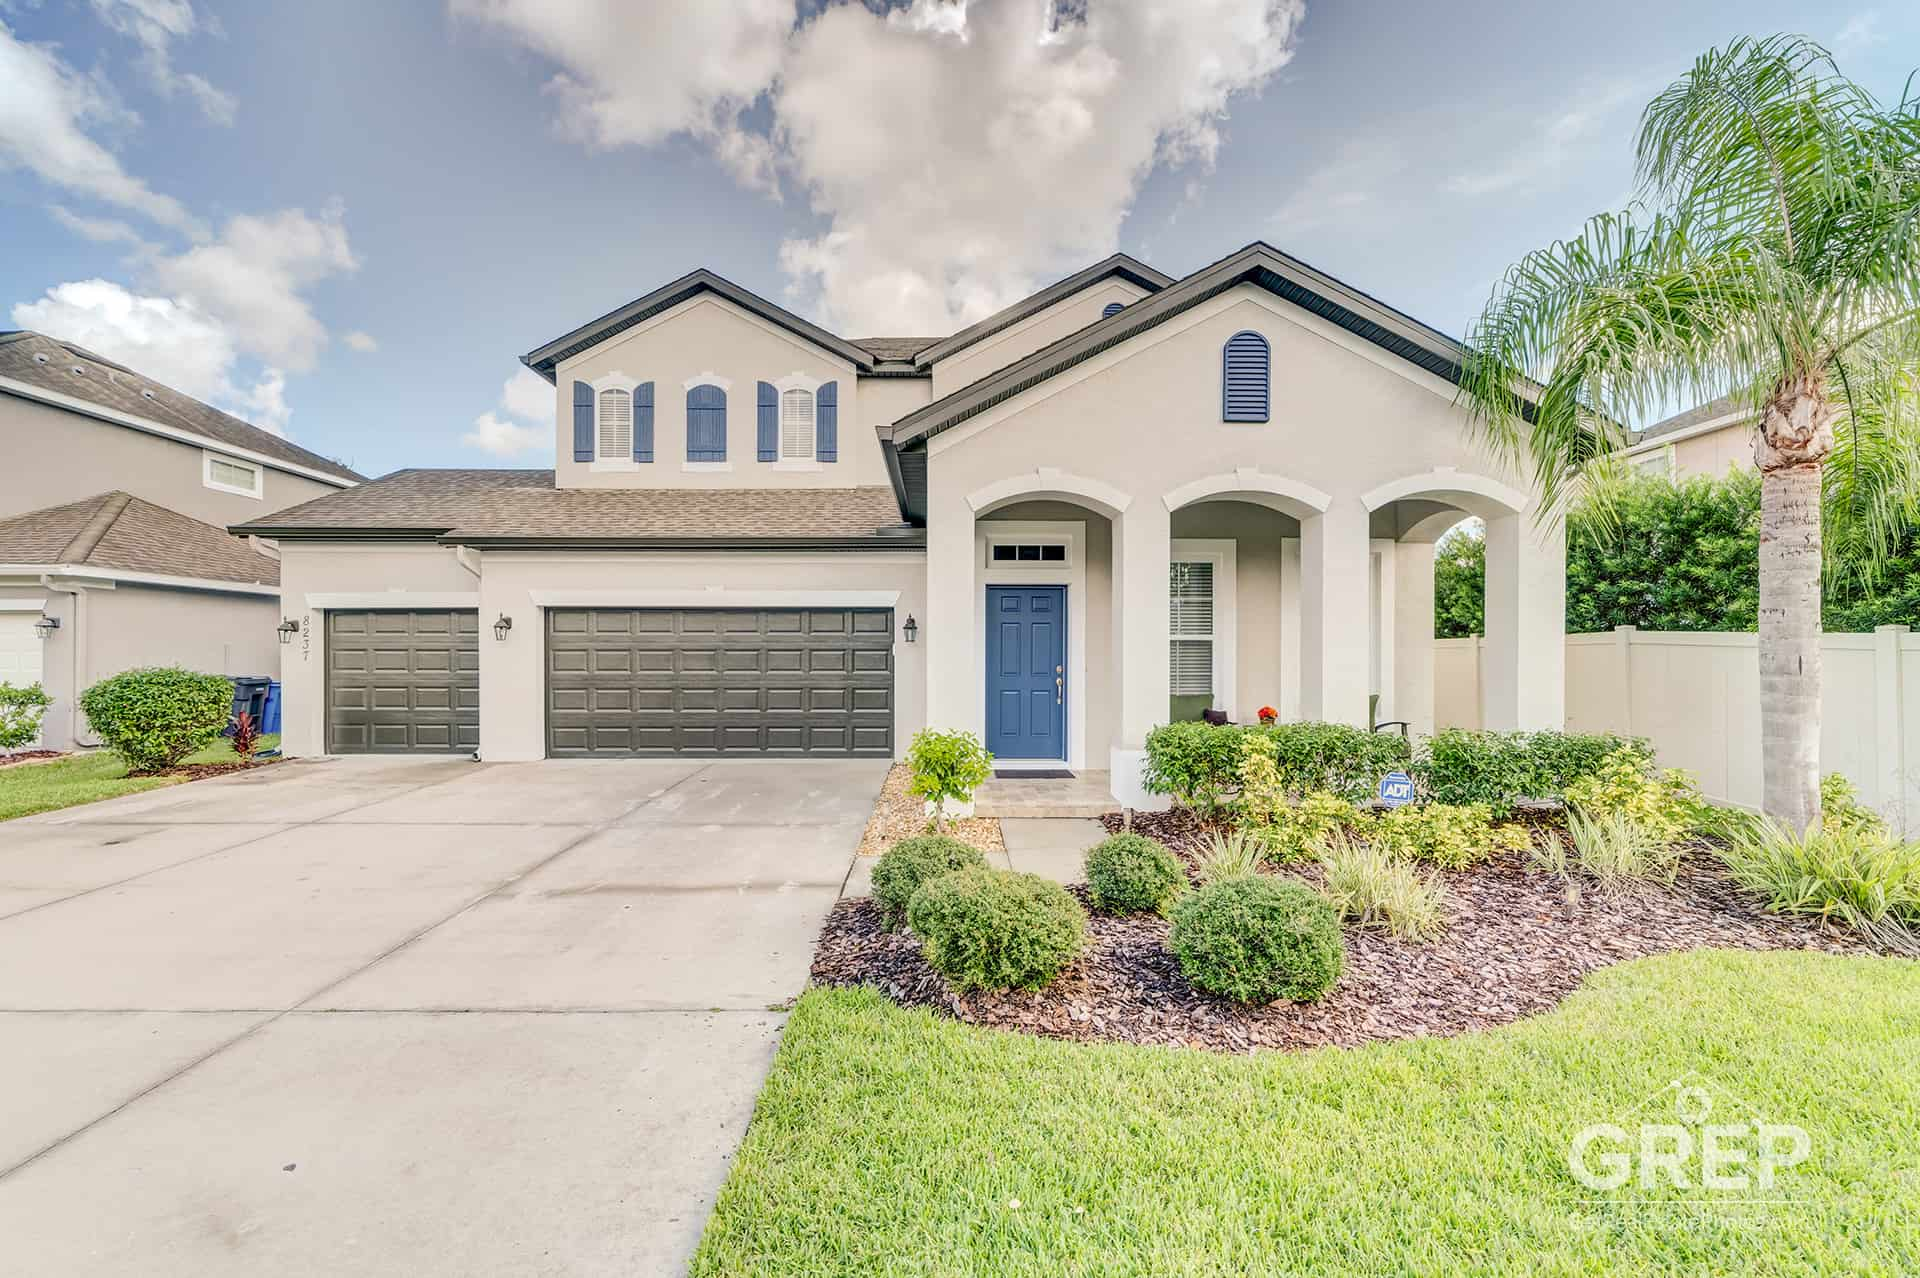 Exterior Real Estate Photography Tampa